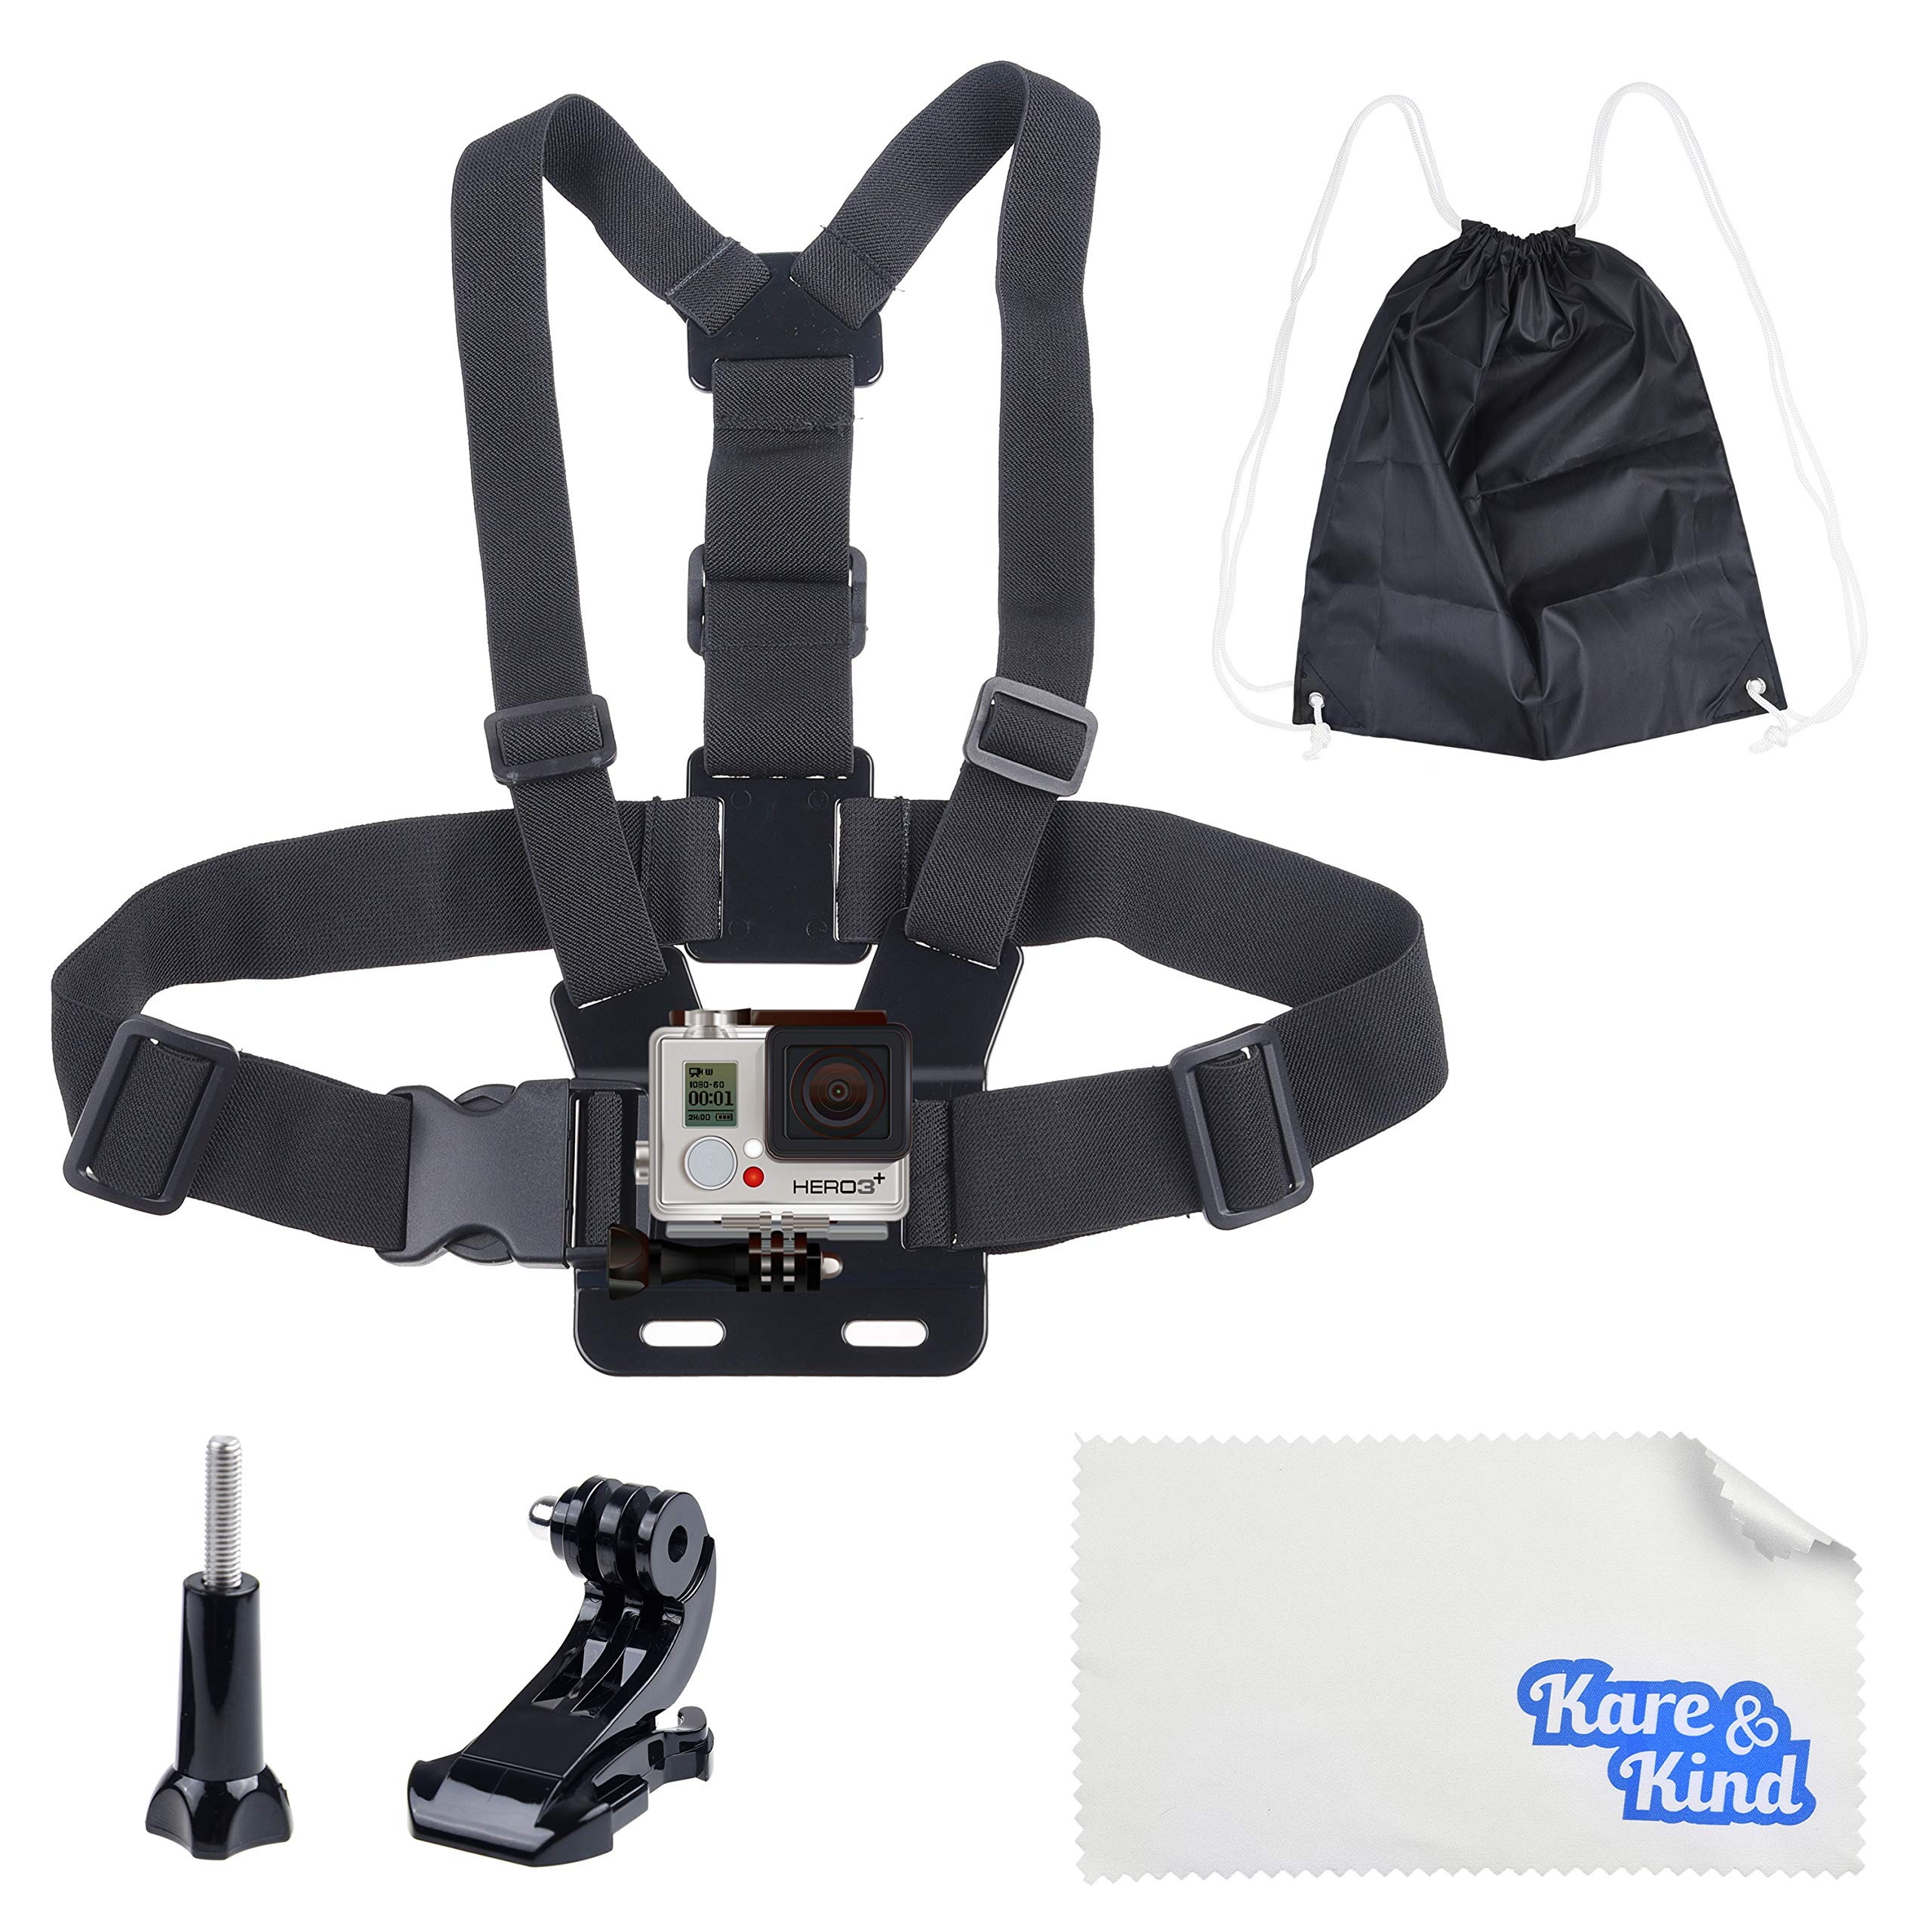 Kare & Kind Chest Mount Harness Compatible with GoPro Hero7, 6, 5, 4, Hero Session, Black, Silver, Hero+, LCD, Hero3+, 3, 2, 1, DJI OSMO Action - Adjustable Chest Strap - for Action Sports and Outdoor by Kare Kind